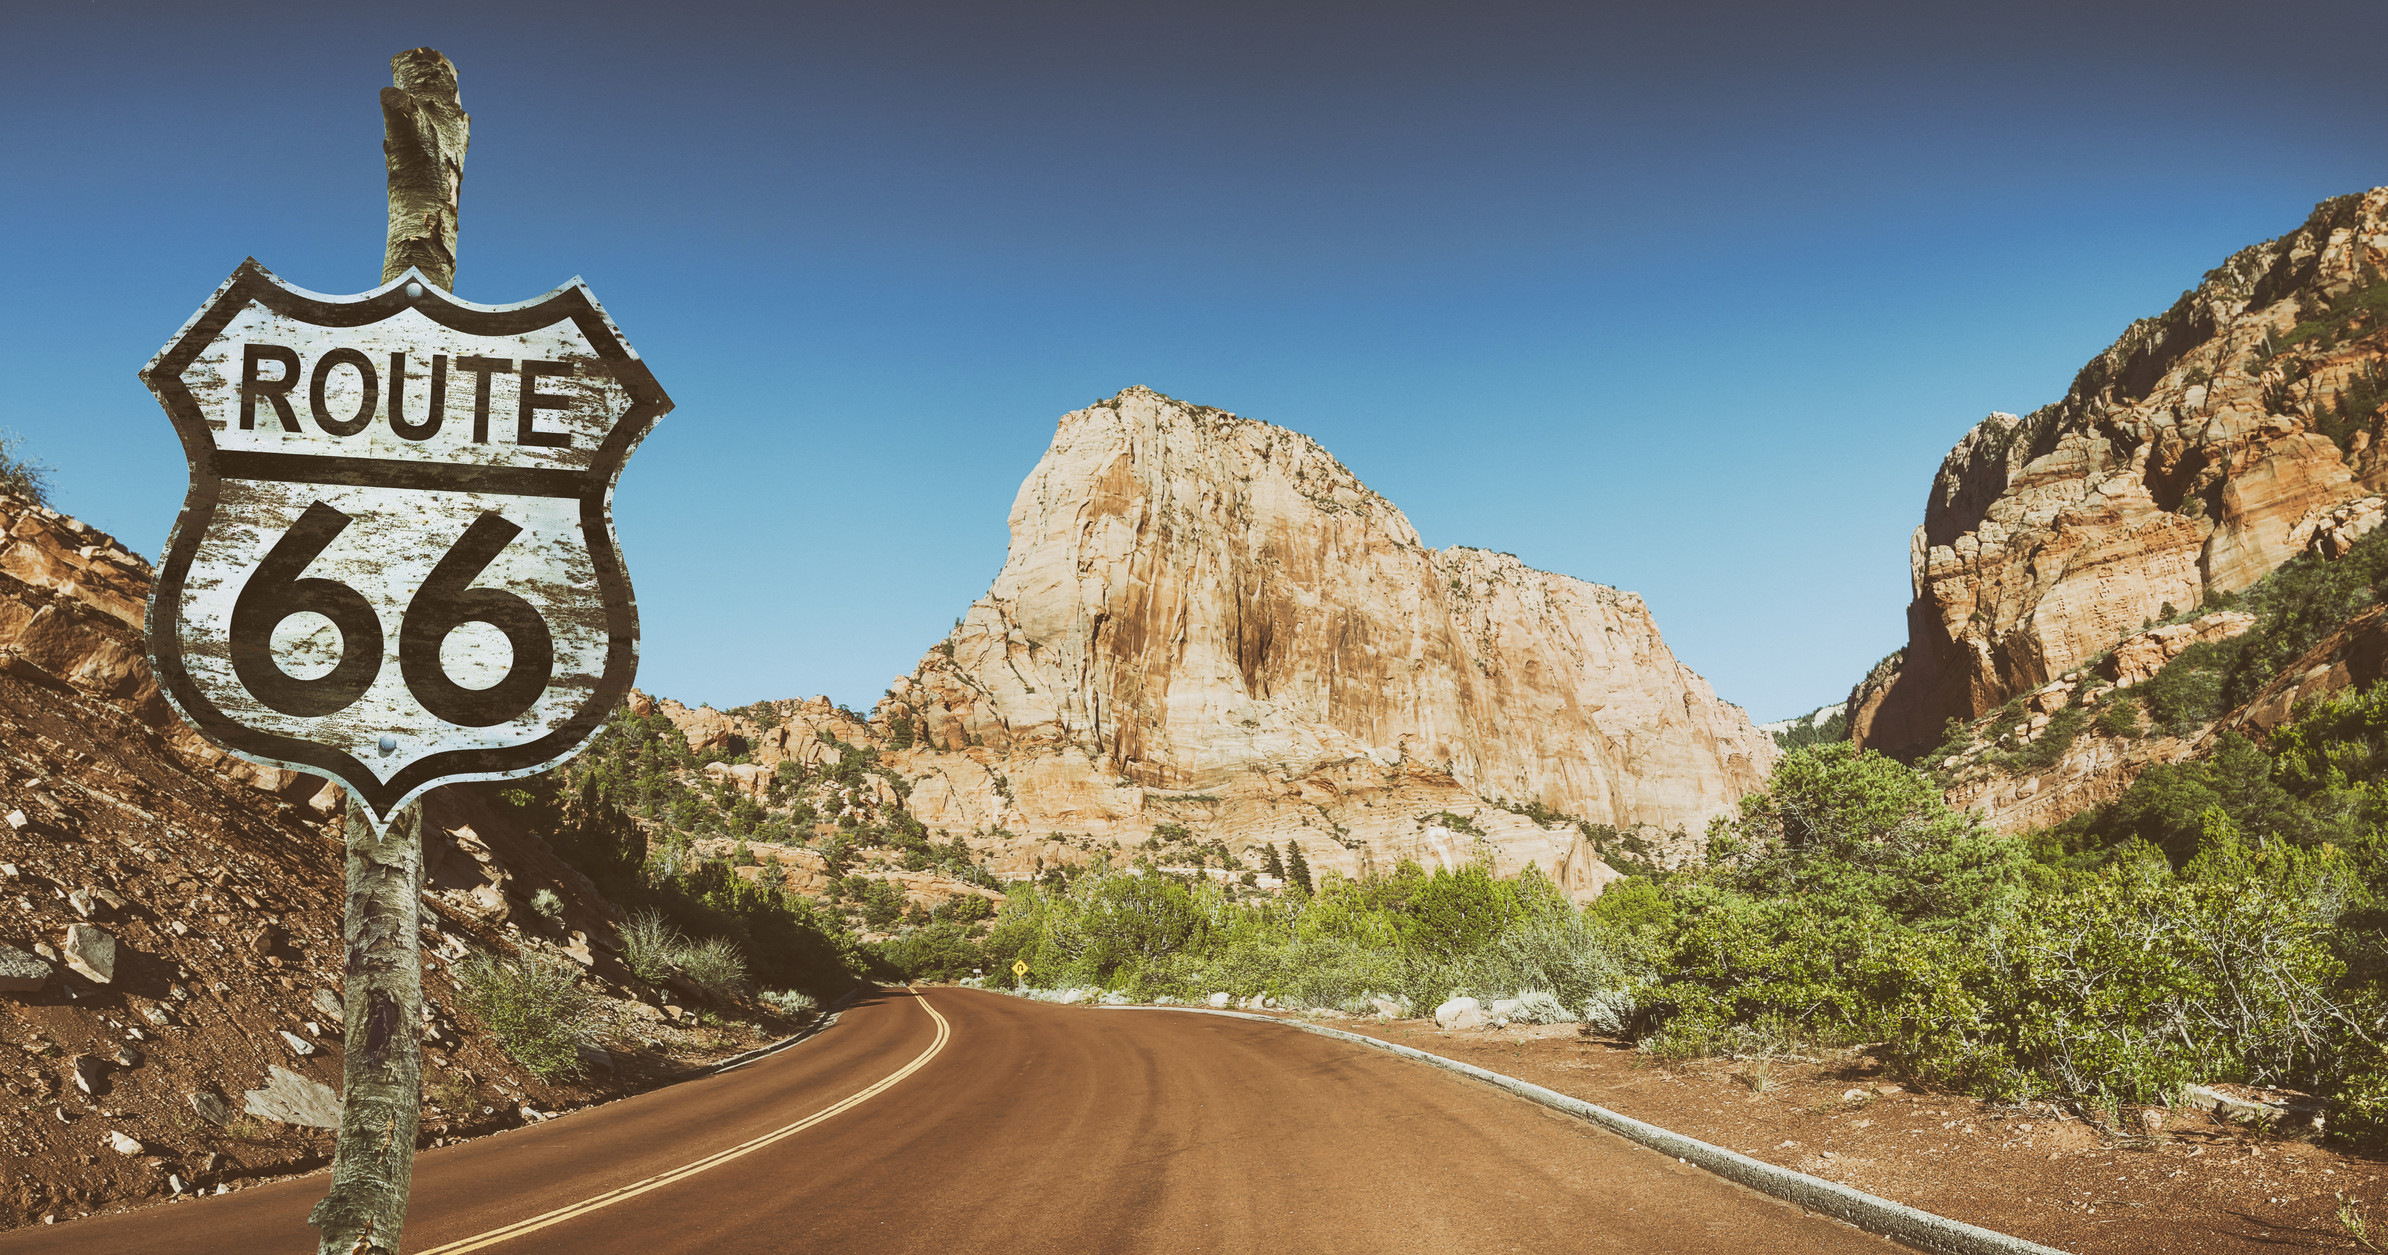 9 Best Things To Do on Route 66 in Arizona